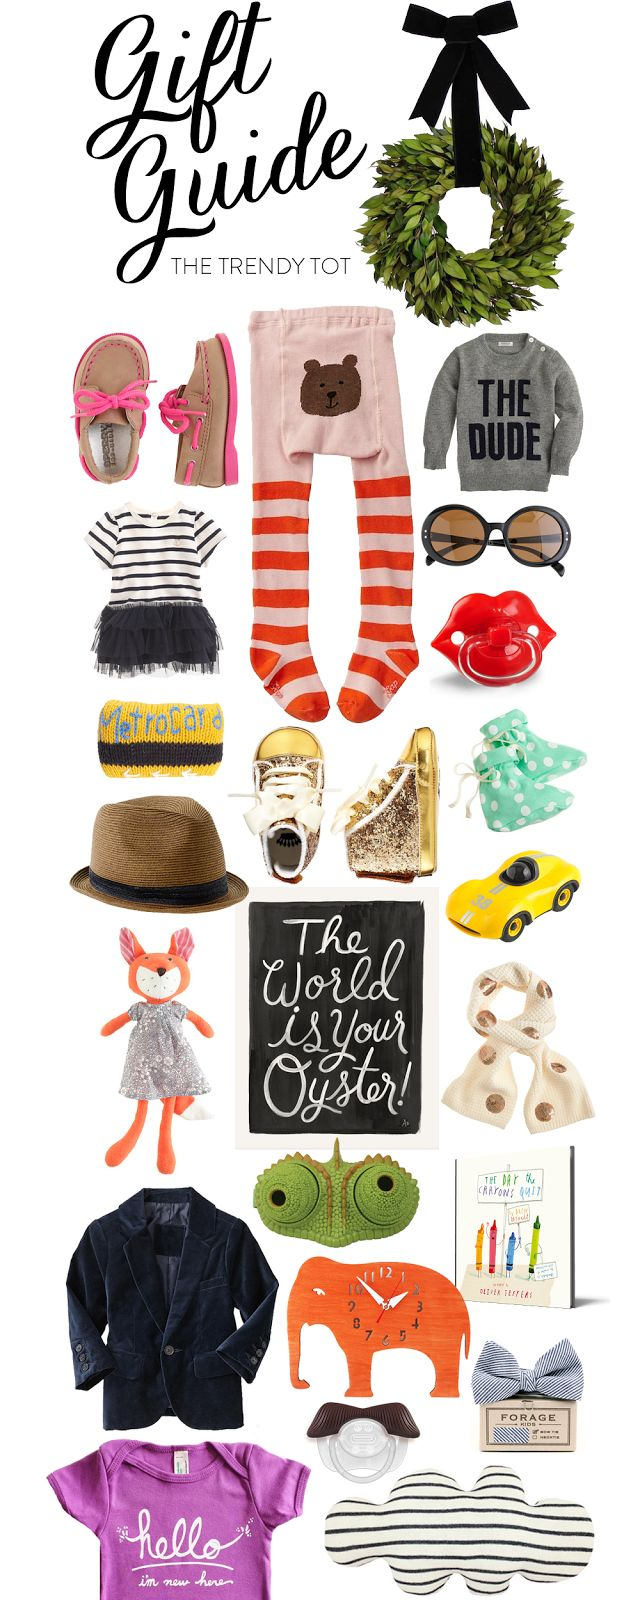 A Gift Guide for The Trendy Tot!